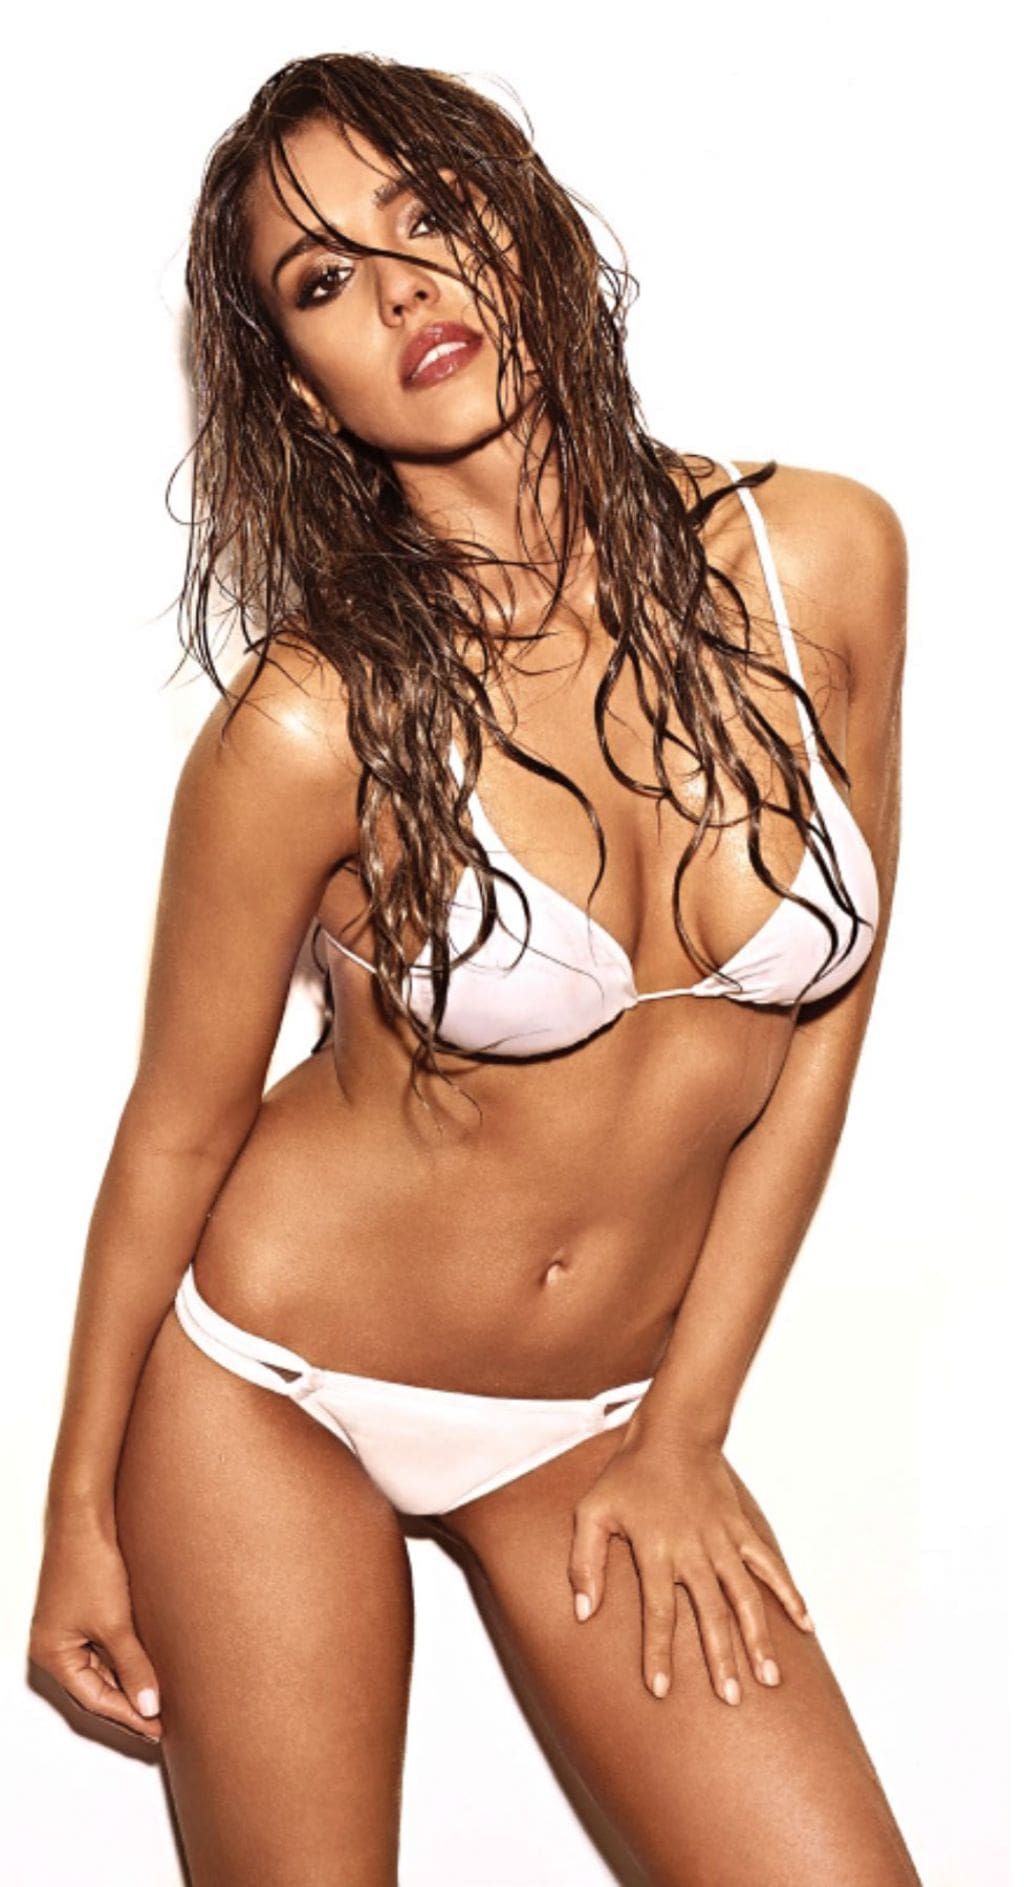 Jessica Alba Sexy boobs Picture in White Bikini